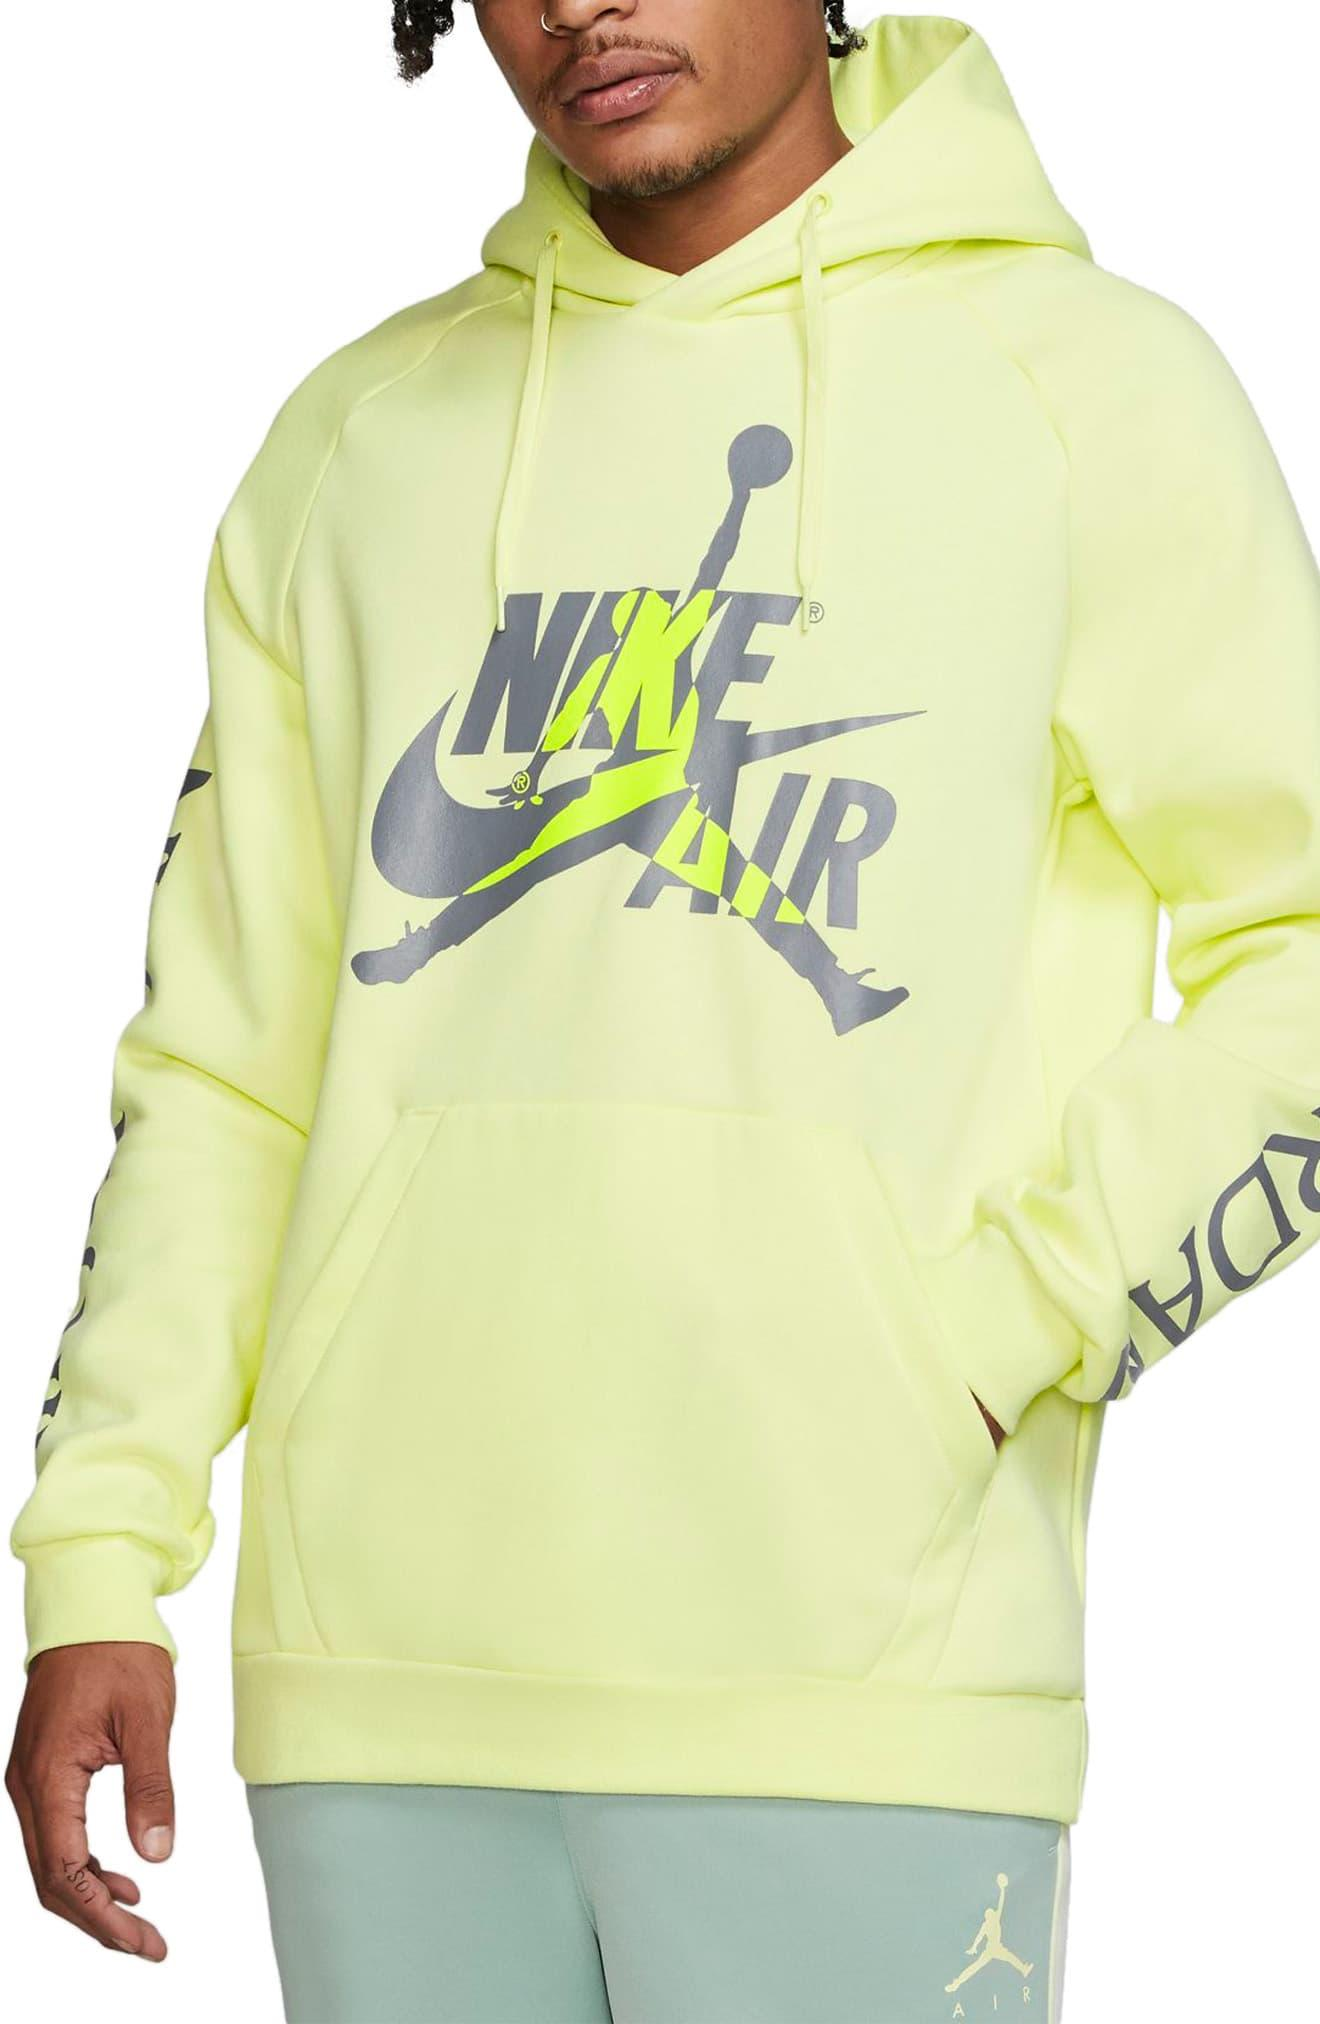 Details about mens NIKE hbr premium sweatshirt fleece hoodie